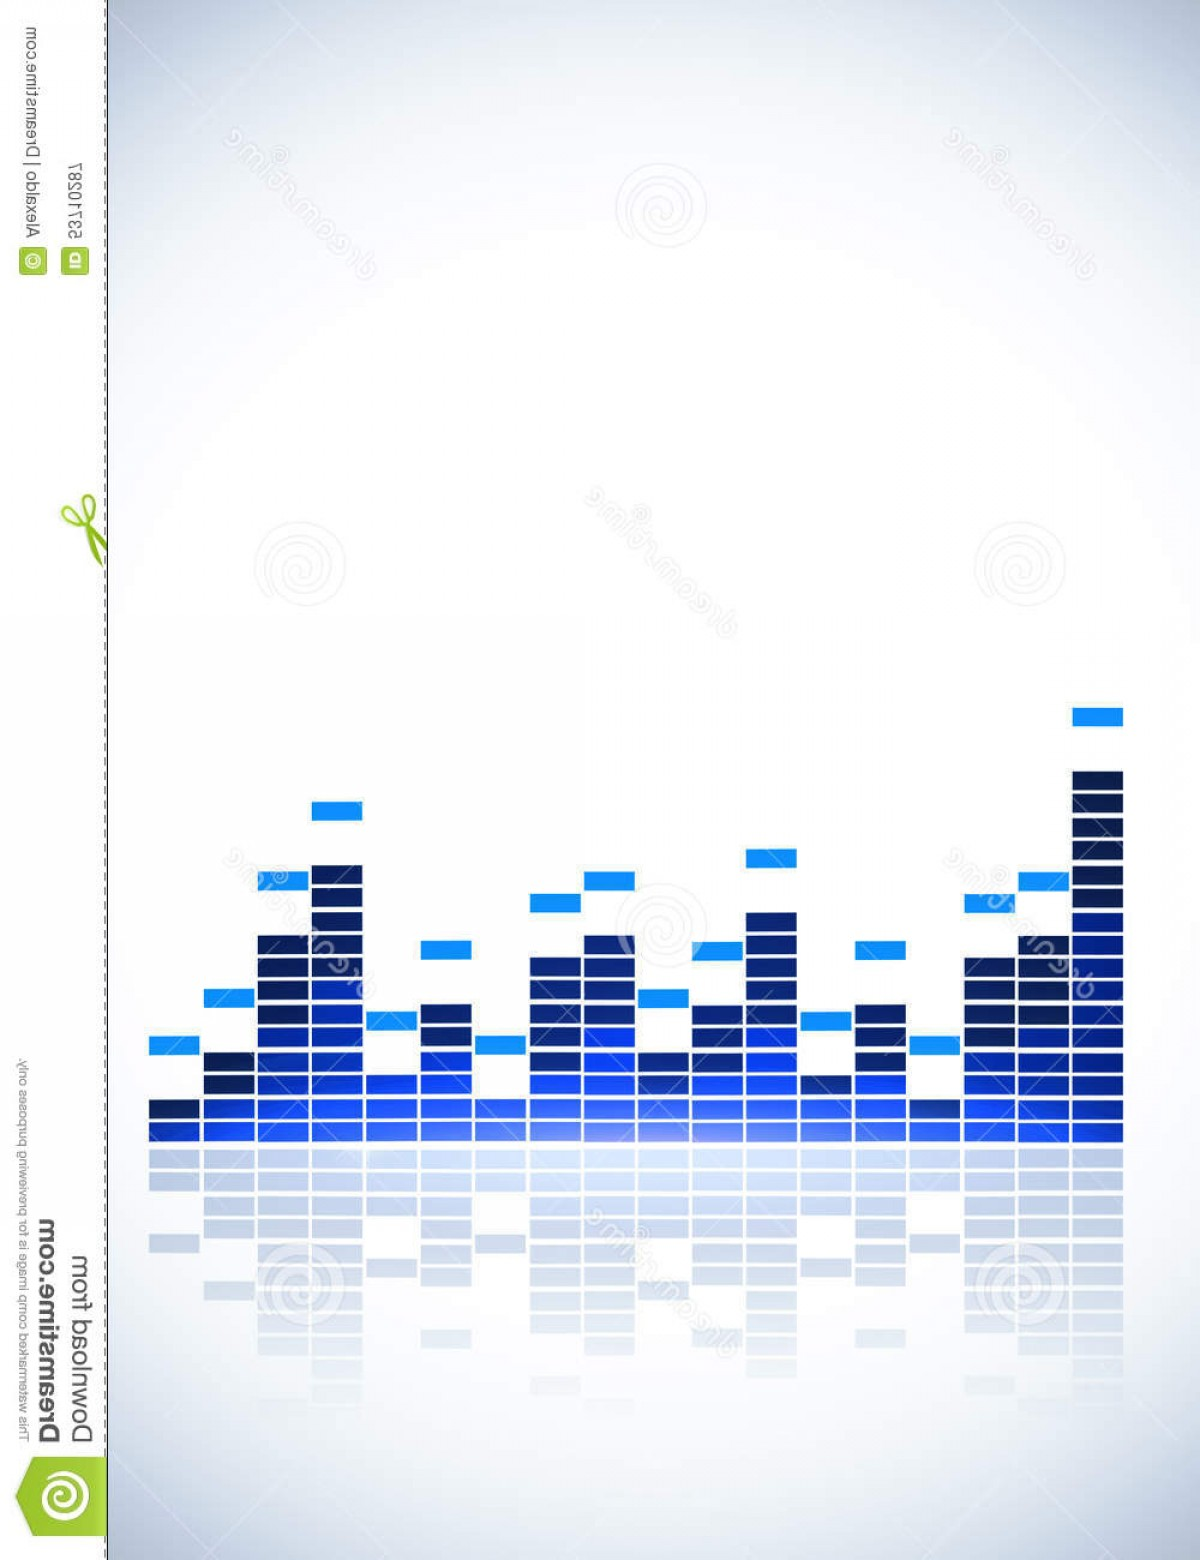 Gifs Bar Equalizer Vector Illustration: Stock Illustration Equalizer Music Background Blue White Party Events Image